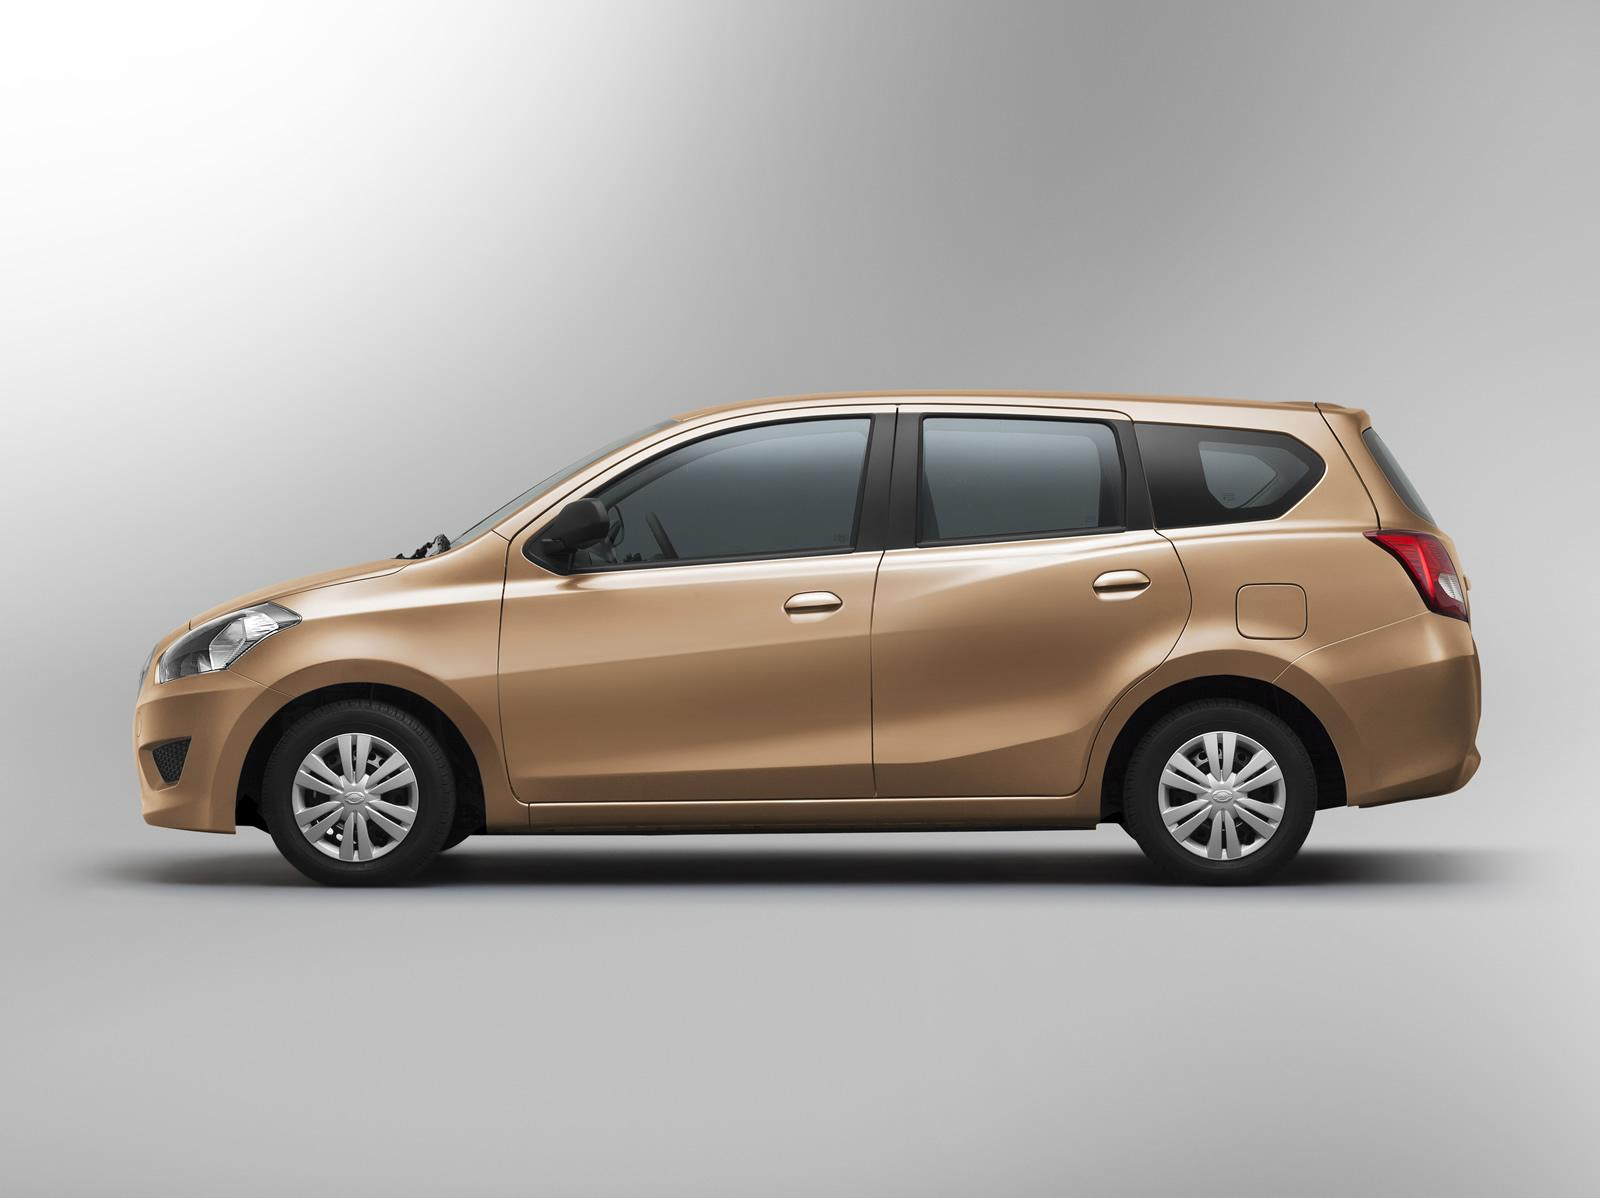 Honda Mobilio Price >> Datsun GO+ 7-seater MPV: Datsun's second model in India